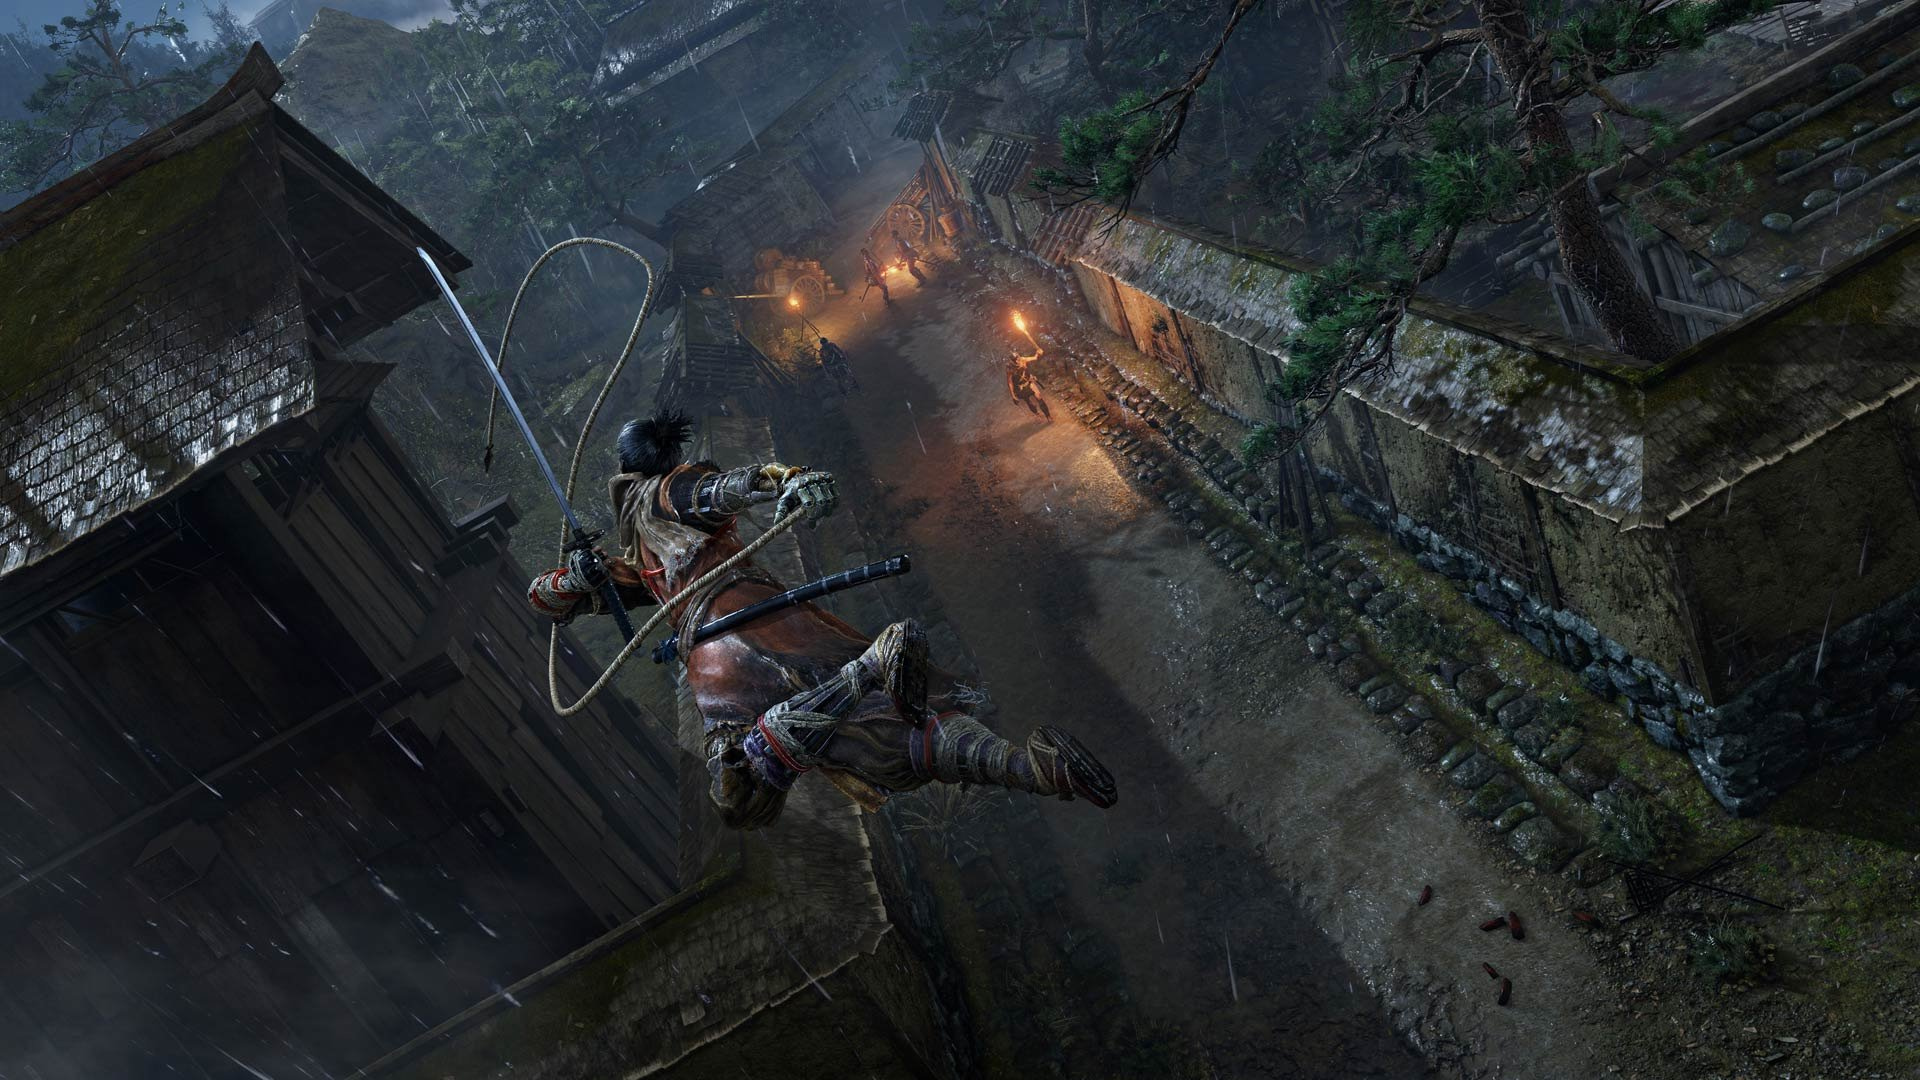 Hirata Estate is an okay starting point on your XP and gold farming journey in Sekiro